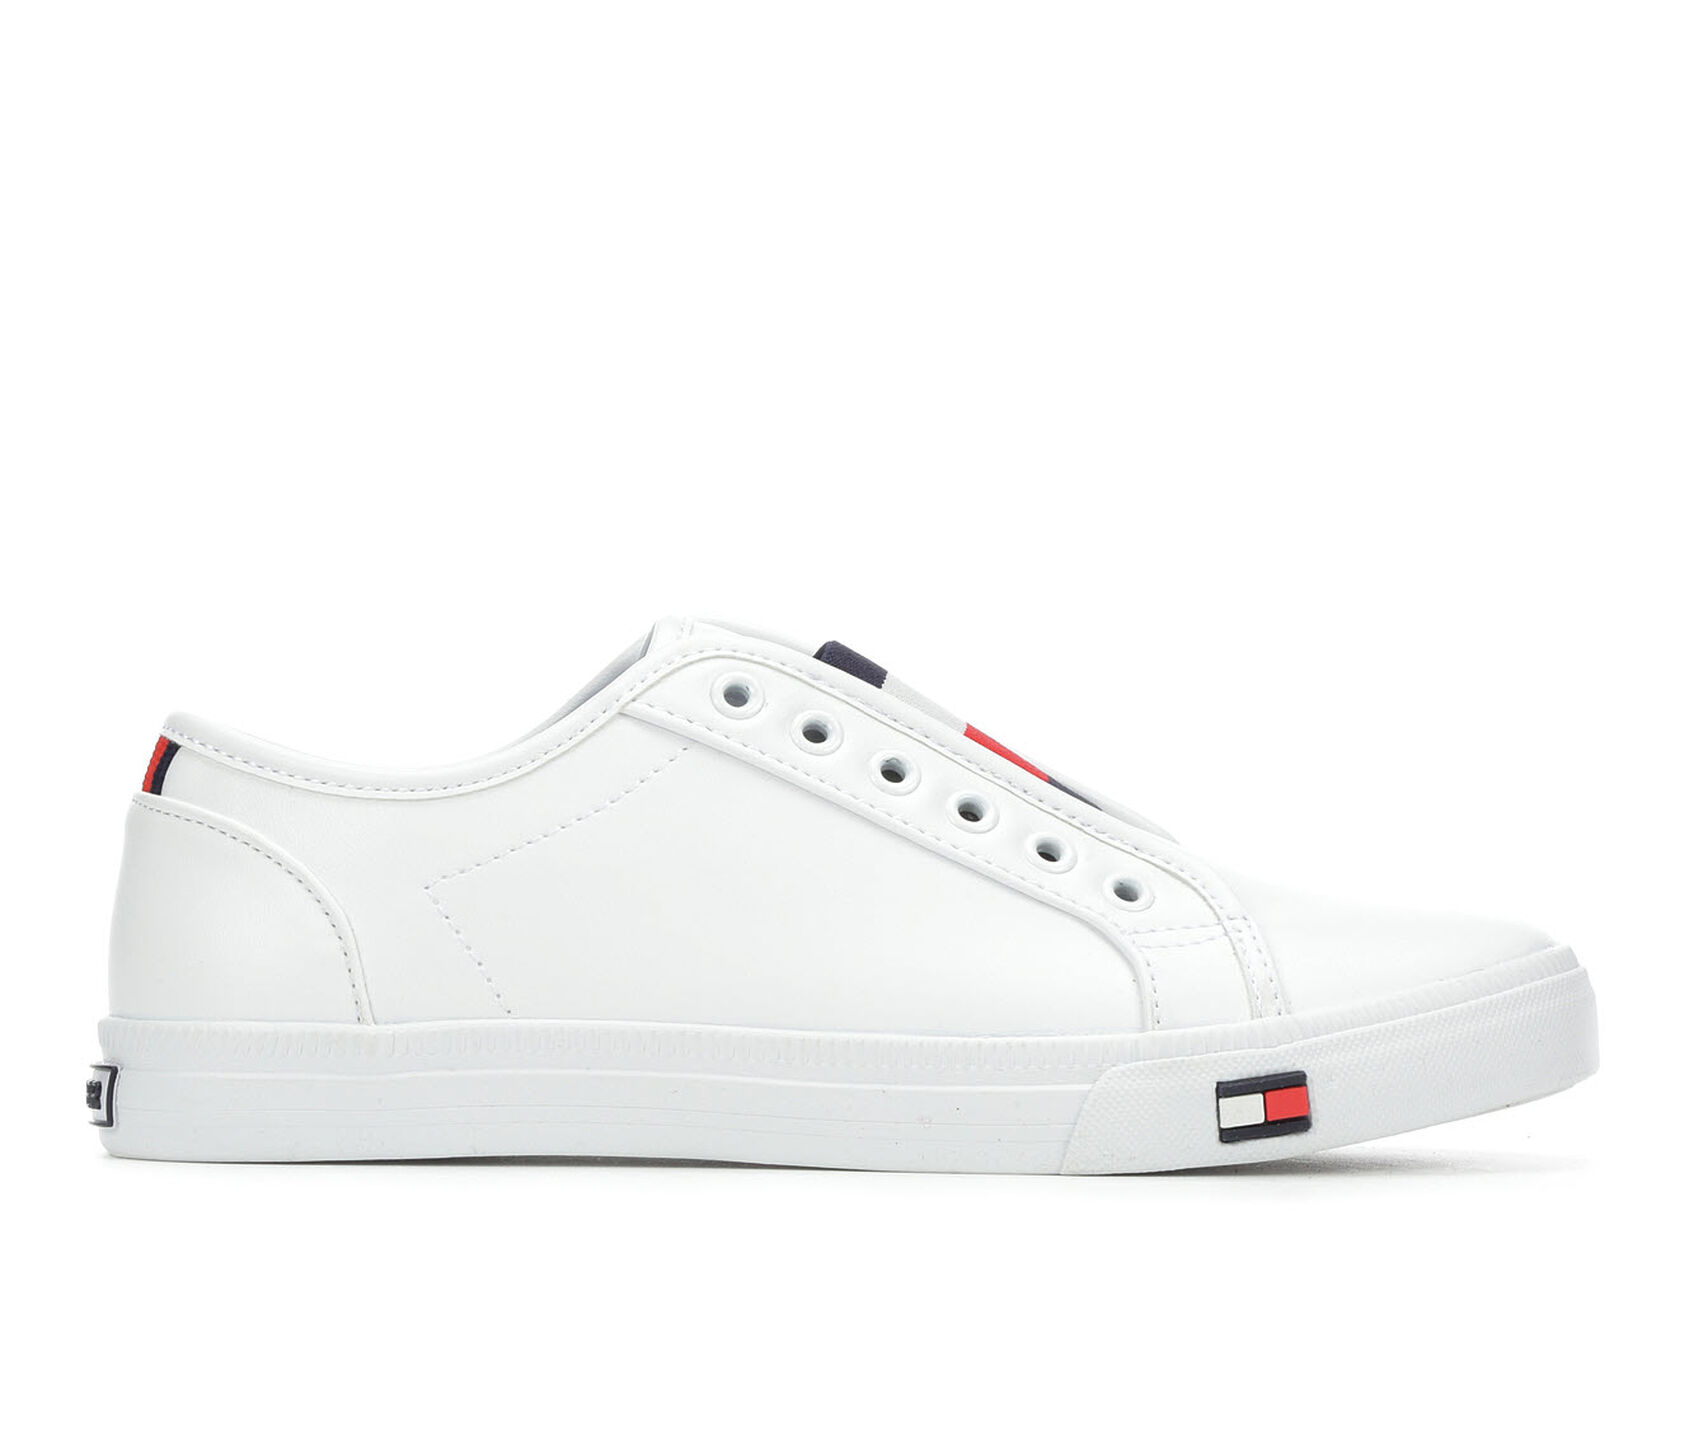 88eacbba72 Women's Tommy Hilfiger Anni Sneakers | Shoe Carnival